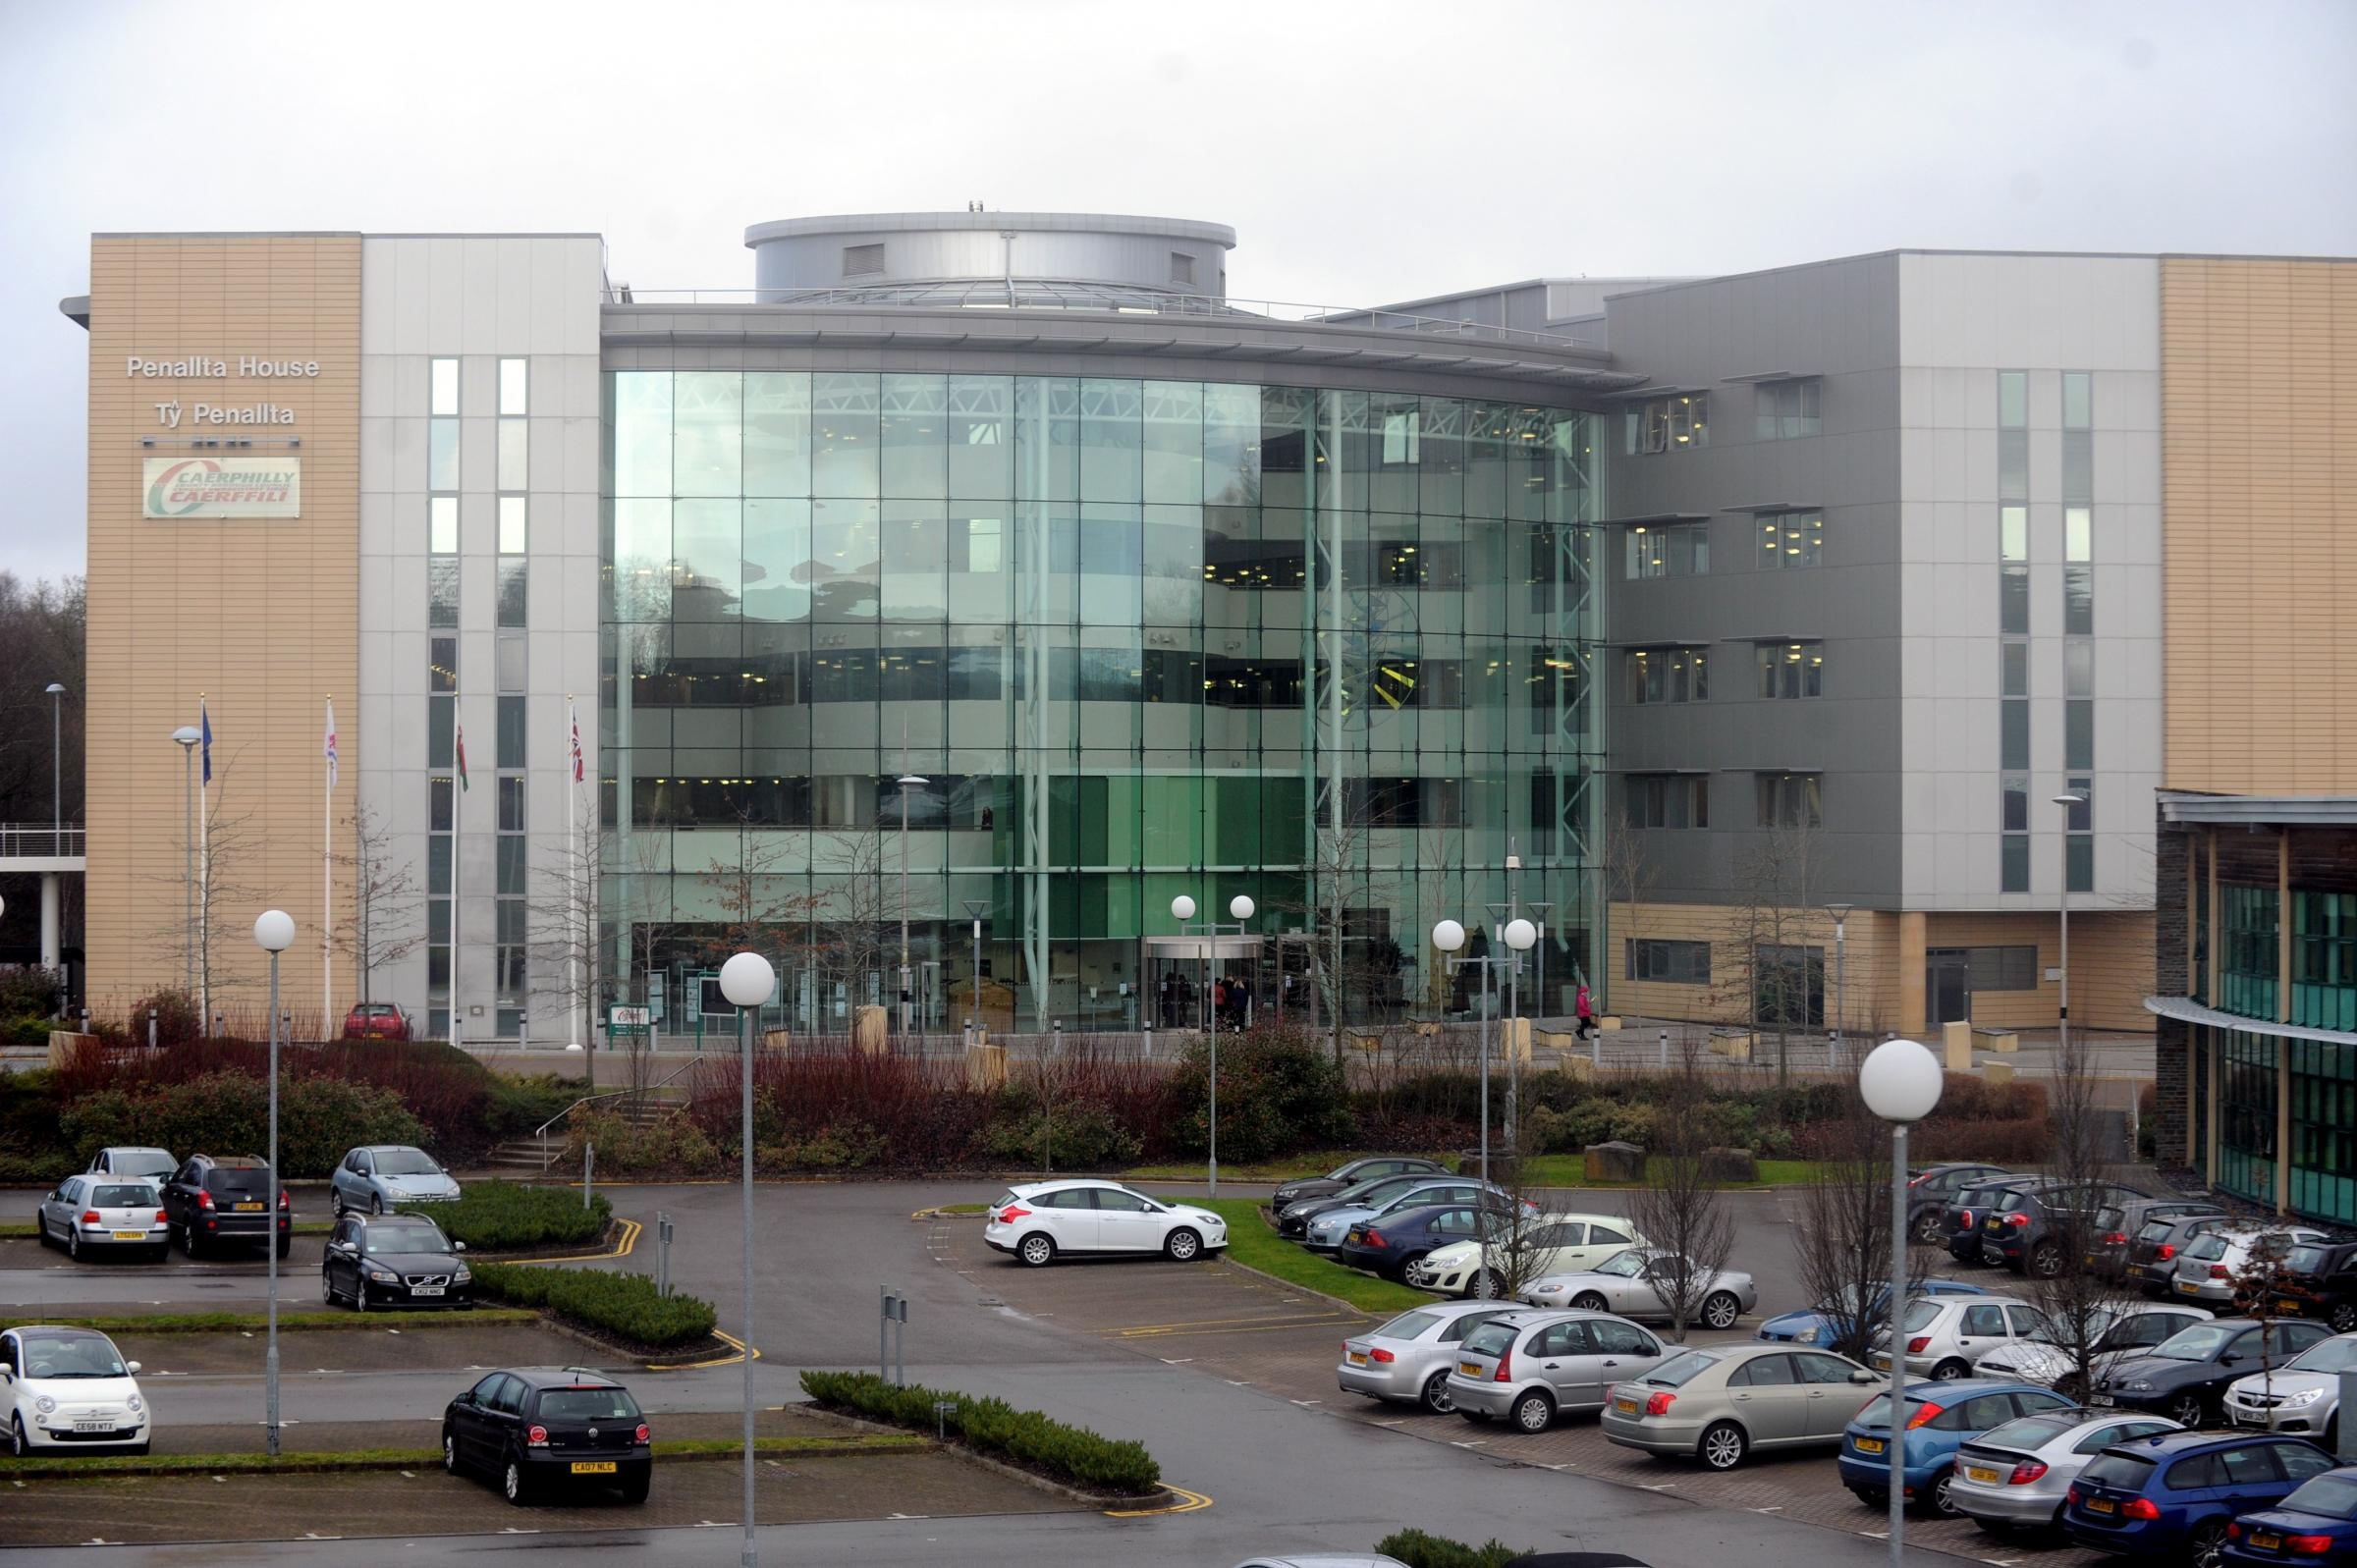 Argus-Mark   Reporter-Charles  17-12-12..Penallta House Caerphilly council offices Tredomen...